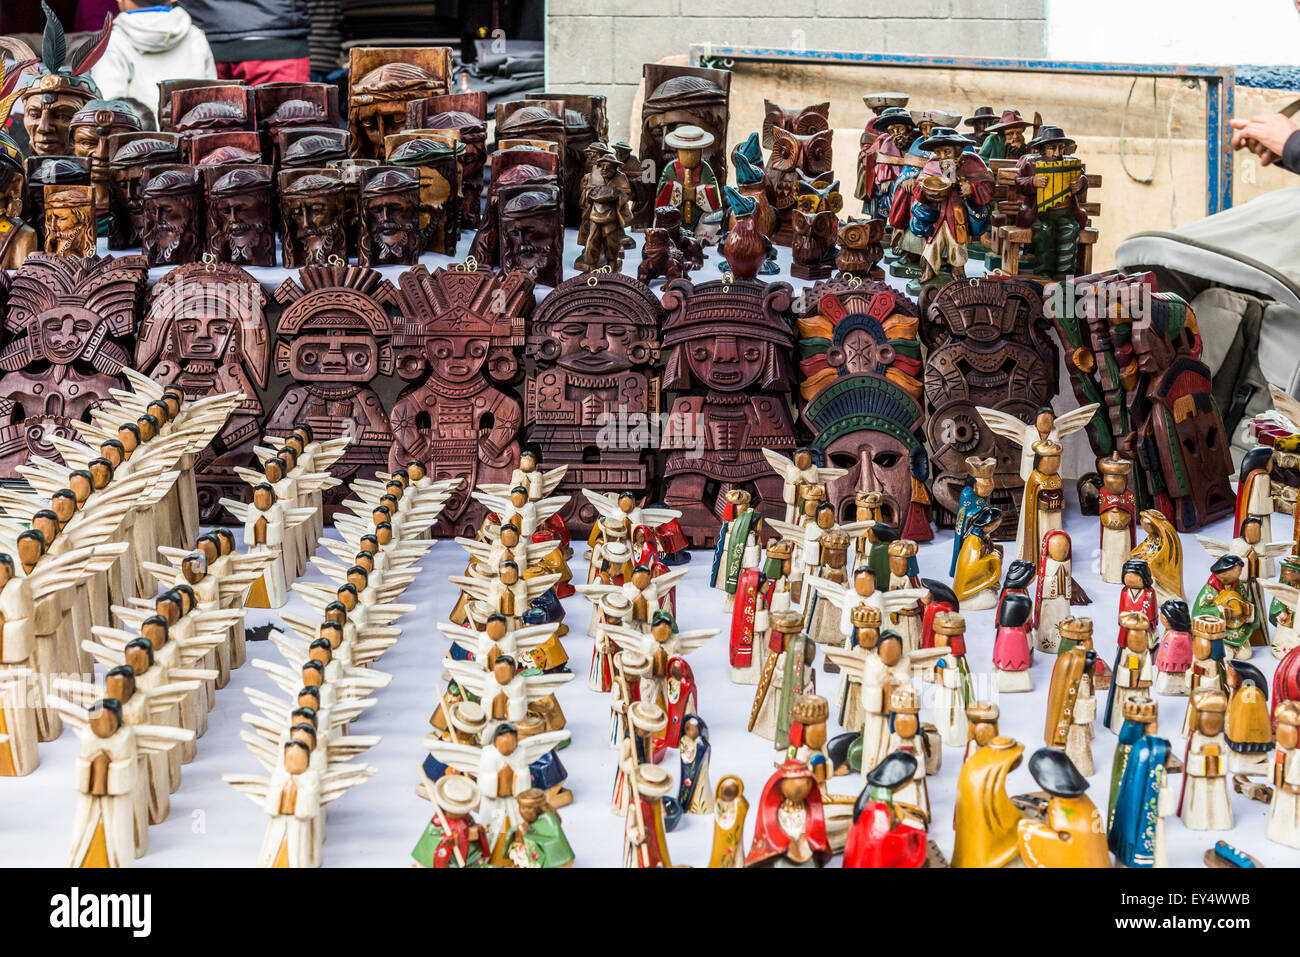 Hand-crafted figurines for sale at local market. Otavalo, Ecuador. - Stock Image